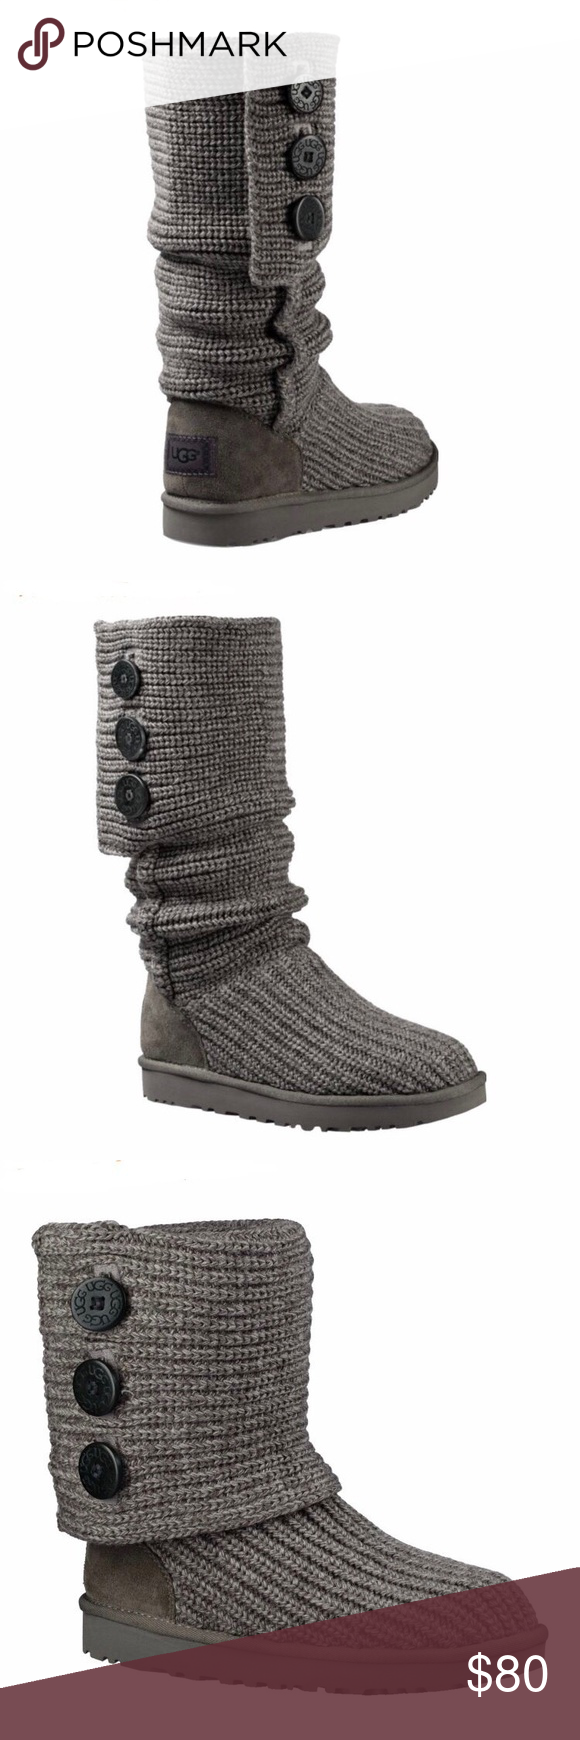 b98acd835e3 UGG Shoes | Ugg Cardy Boots, 10 | Color: Black/Gray | Size: 10 in ...